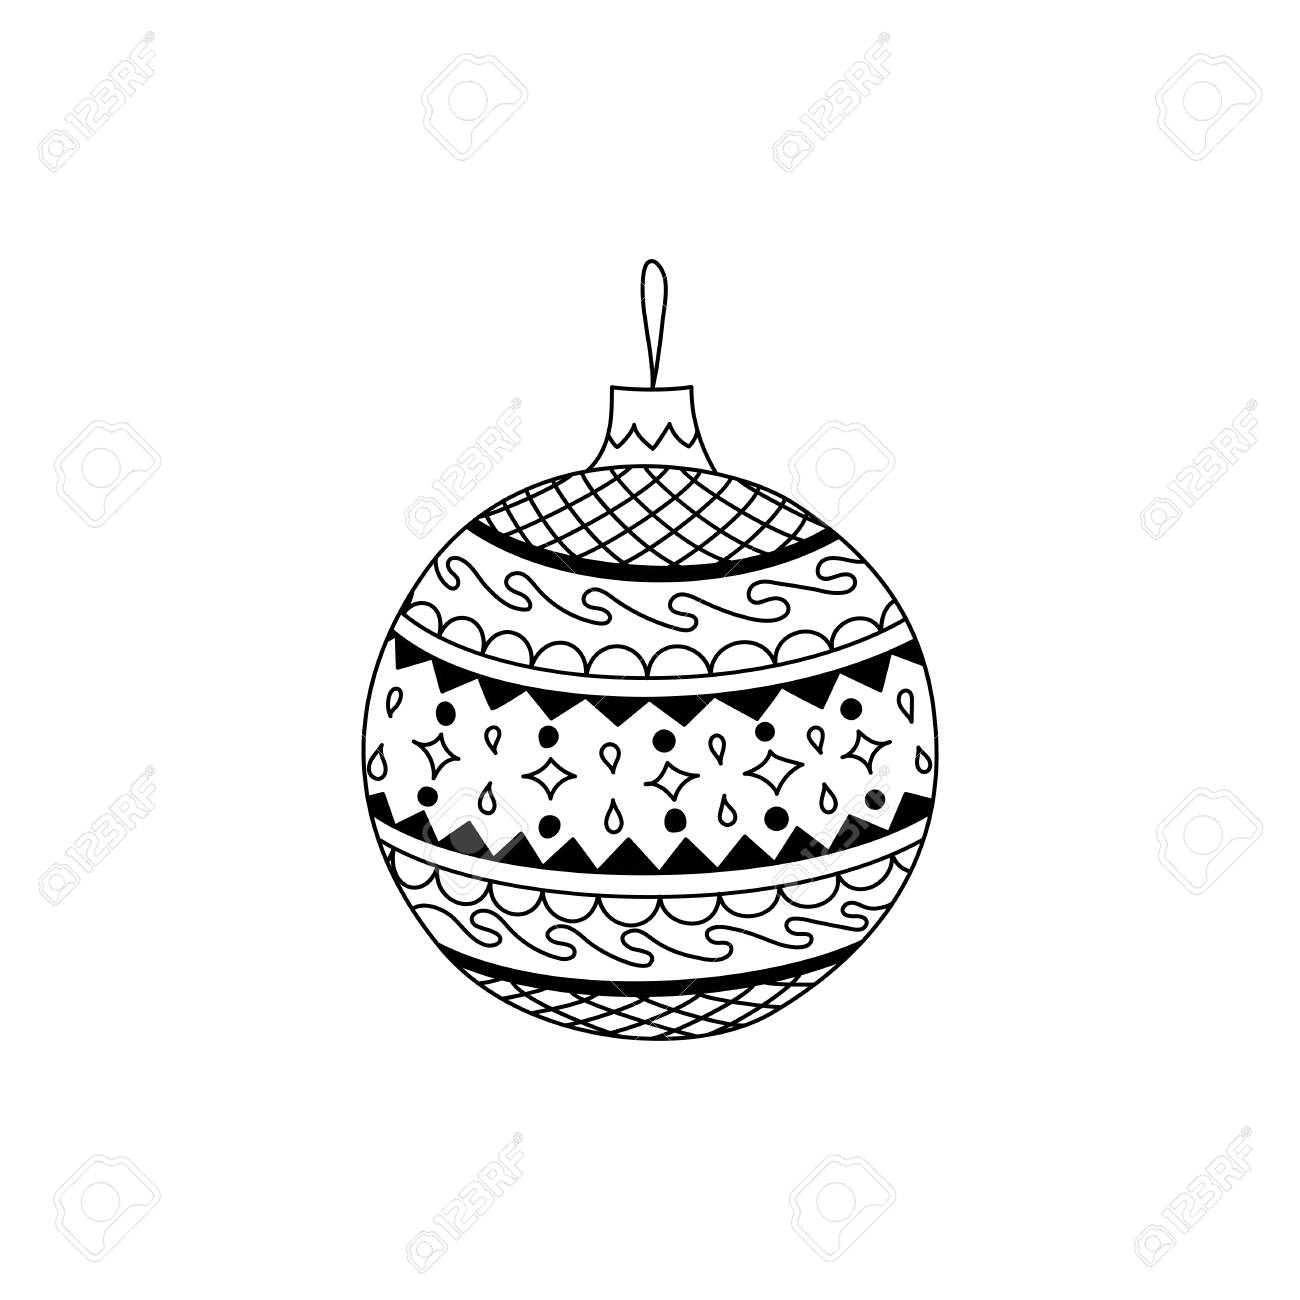 Vector Hand Drawn Christmas Ball Toy Christmas Coloring Page